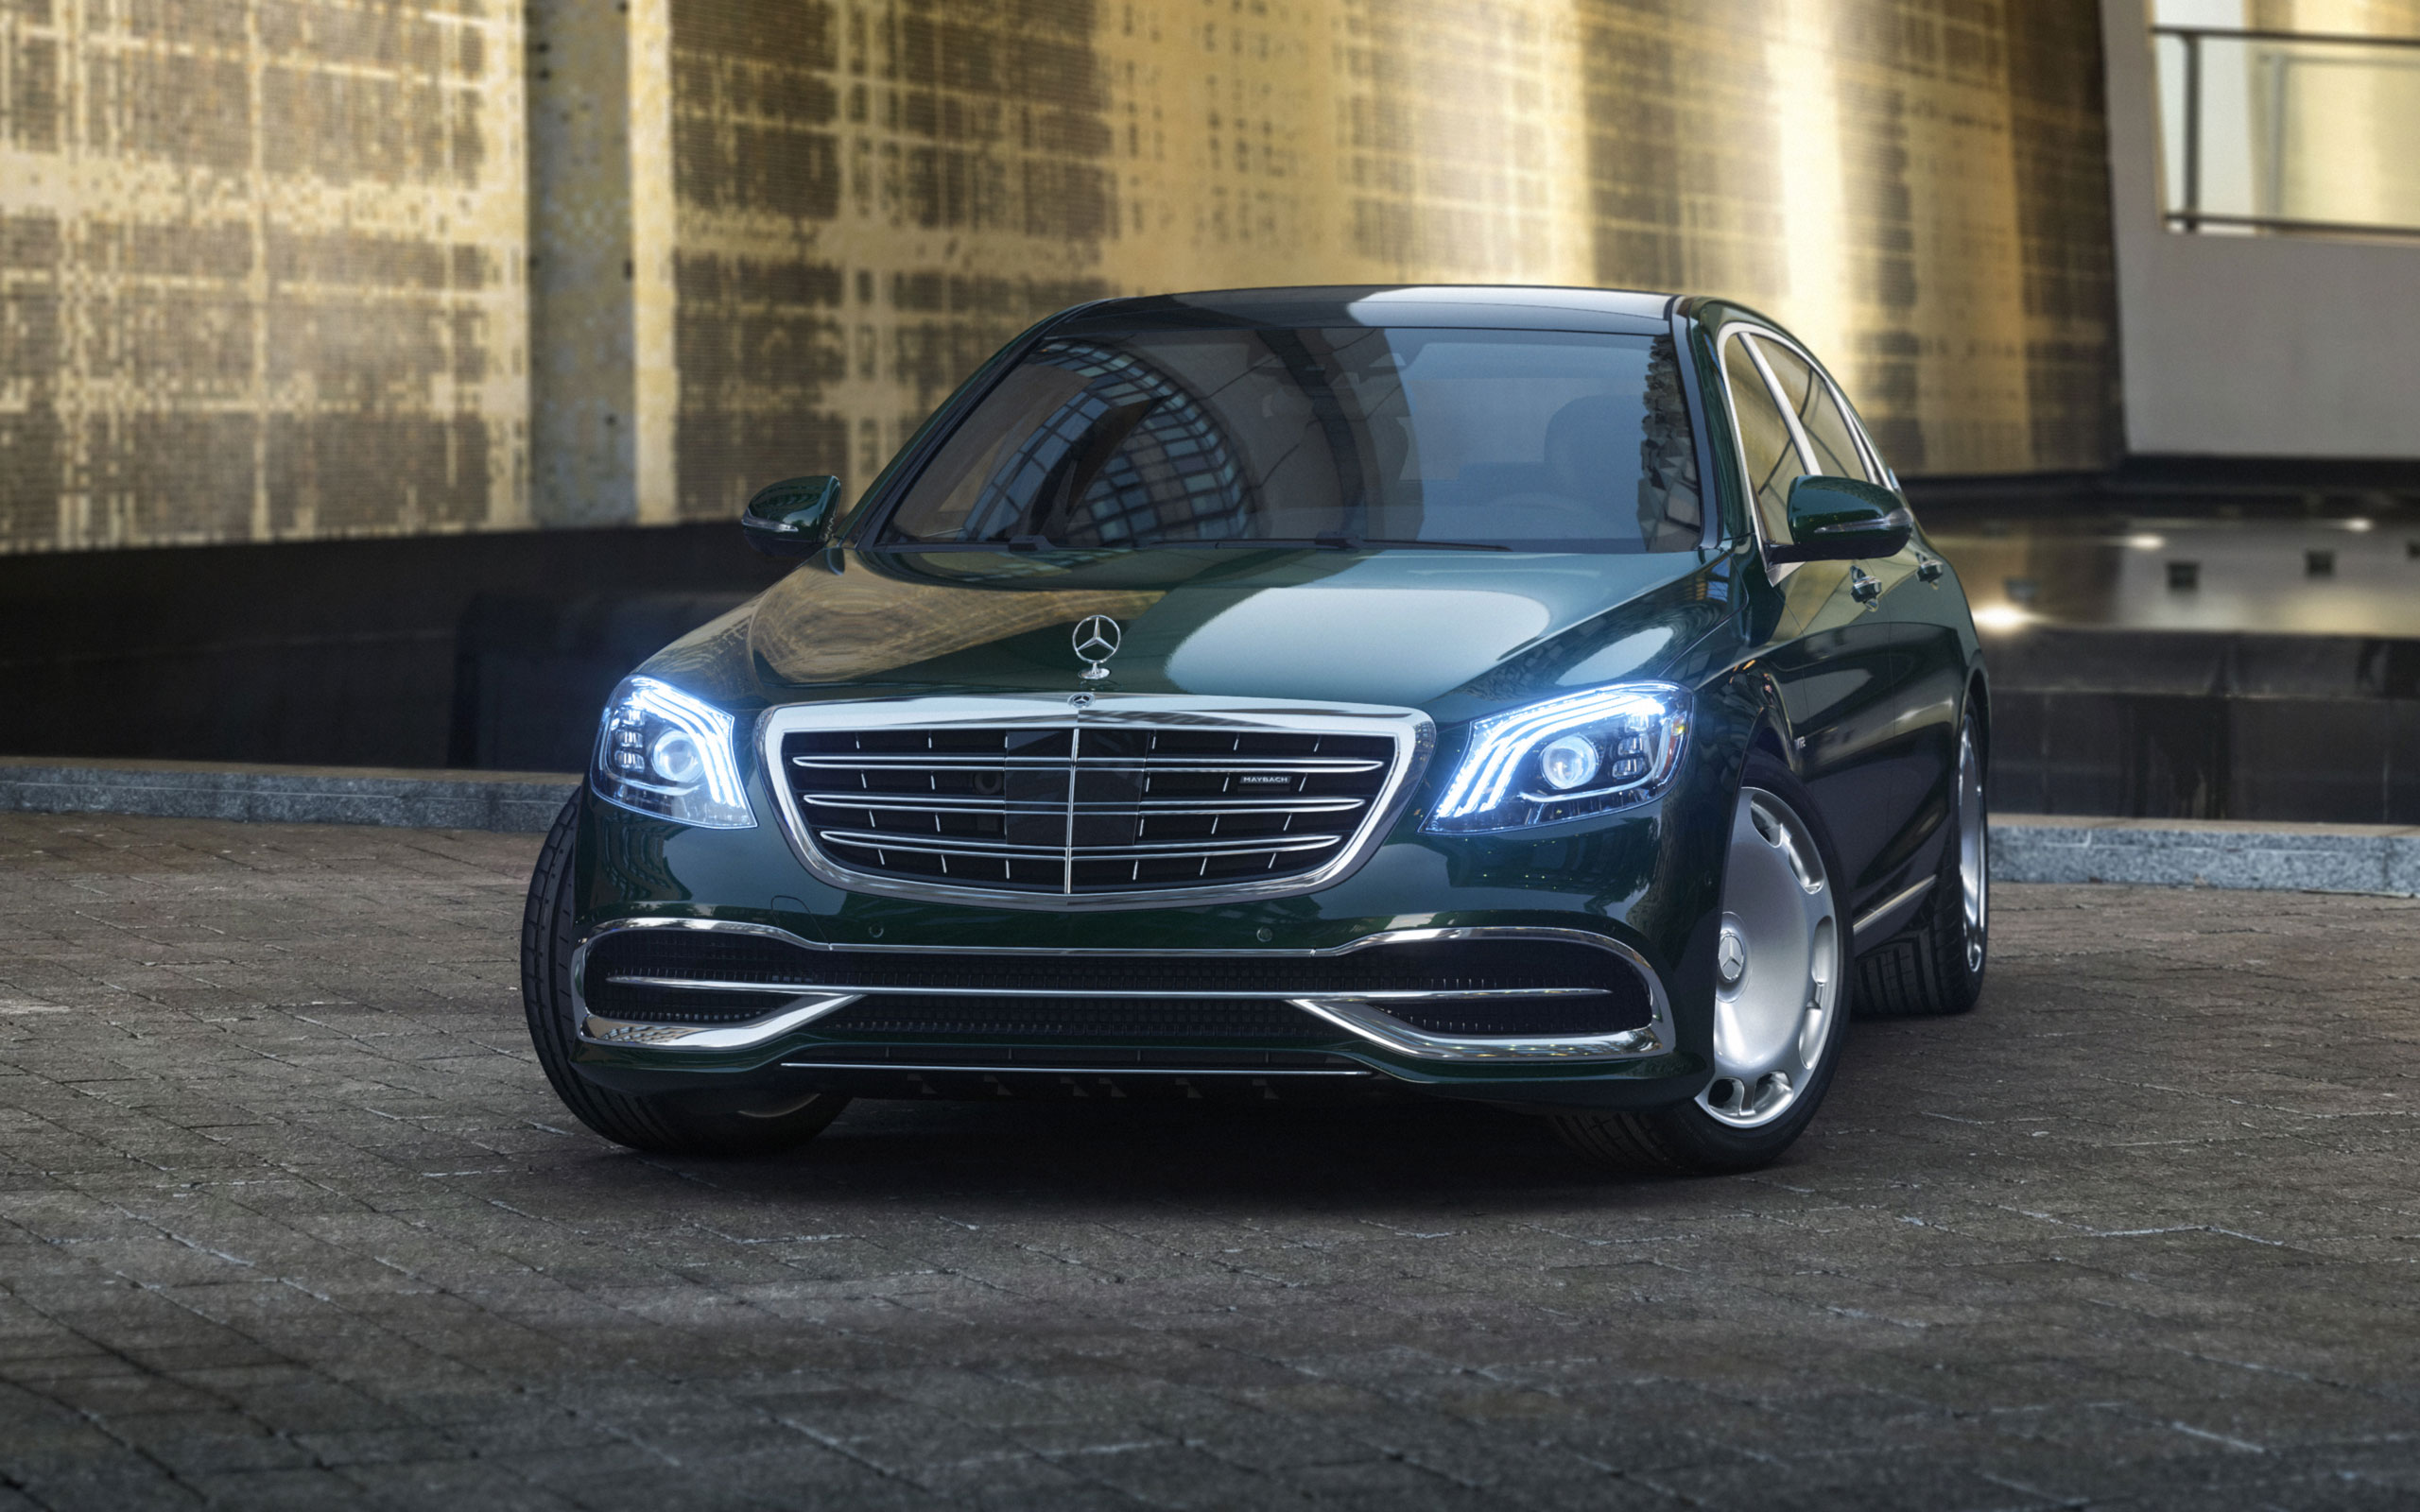 more preview auto review sedan mercedes roadshow s ratings and benz photos class img specs price